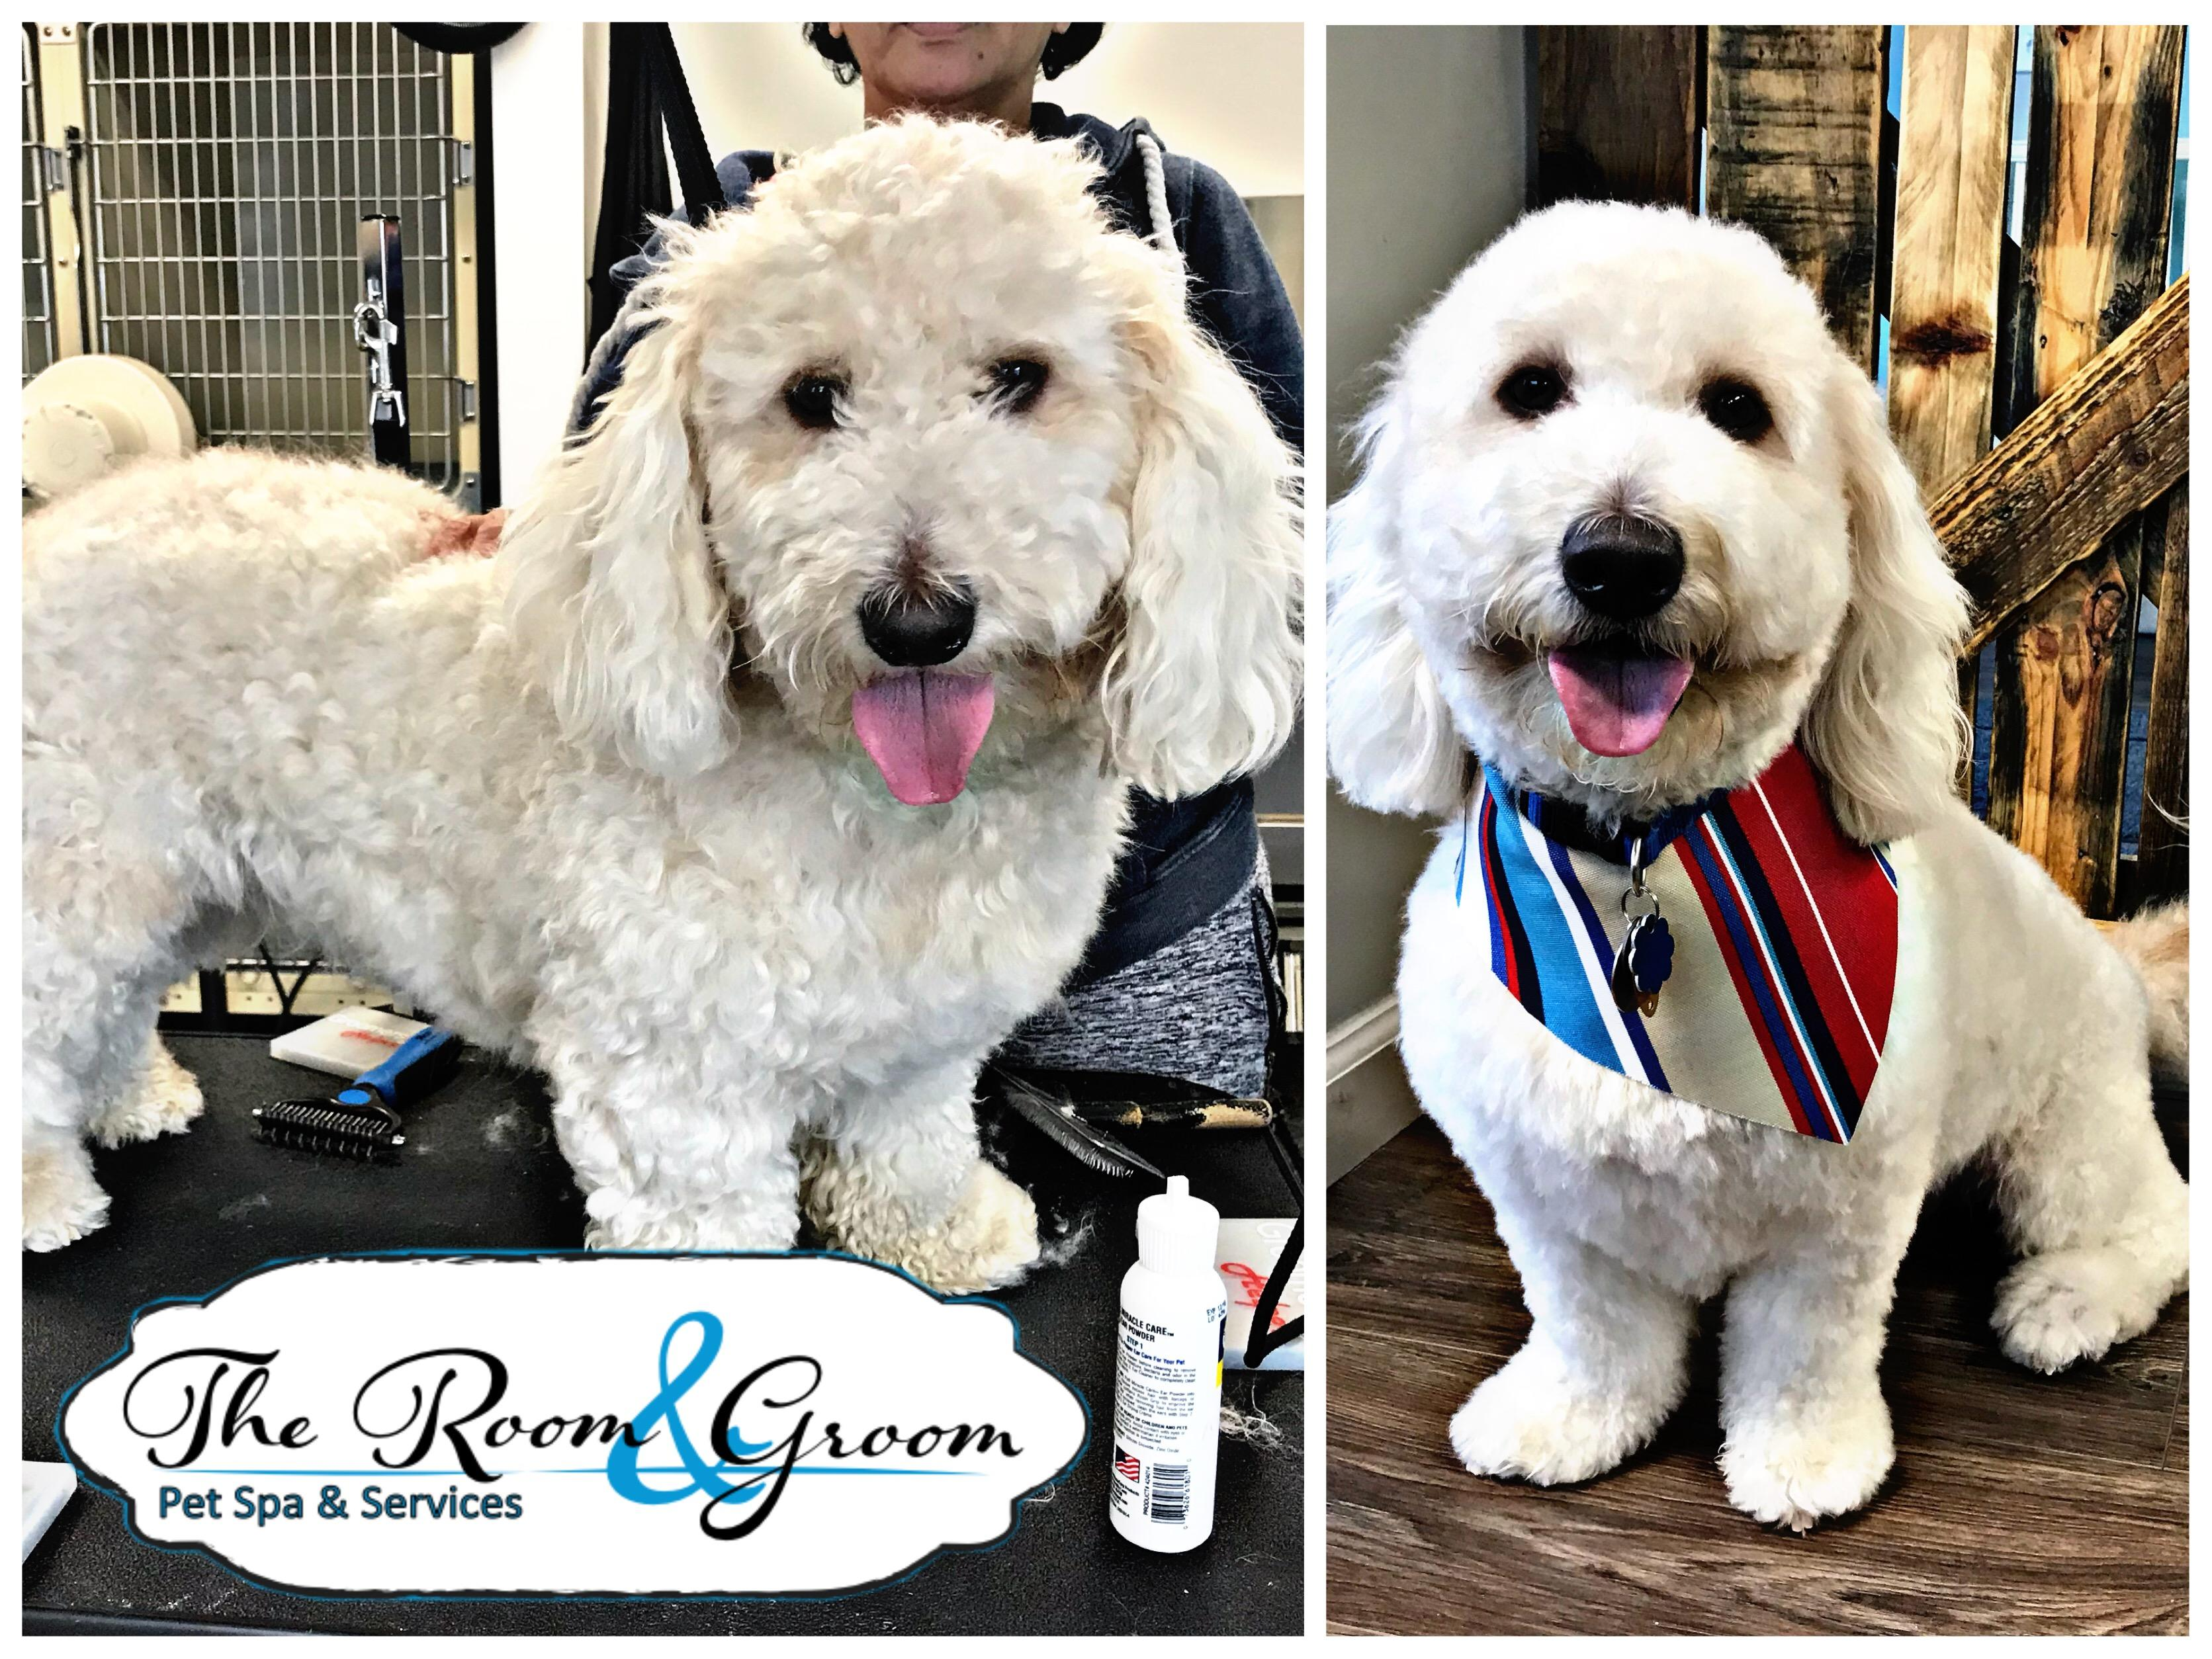 The Room & Groom, Pet Spa & Services image 33